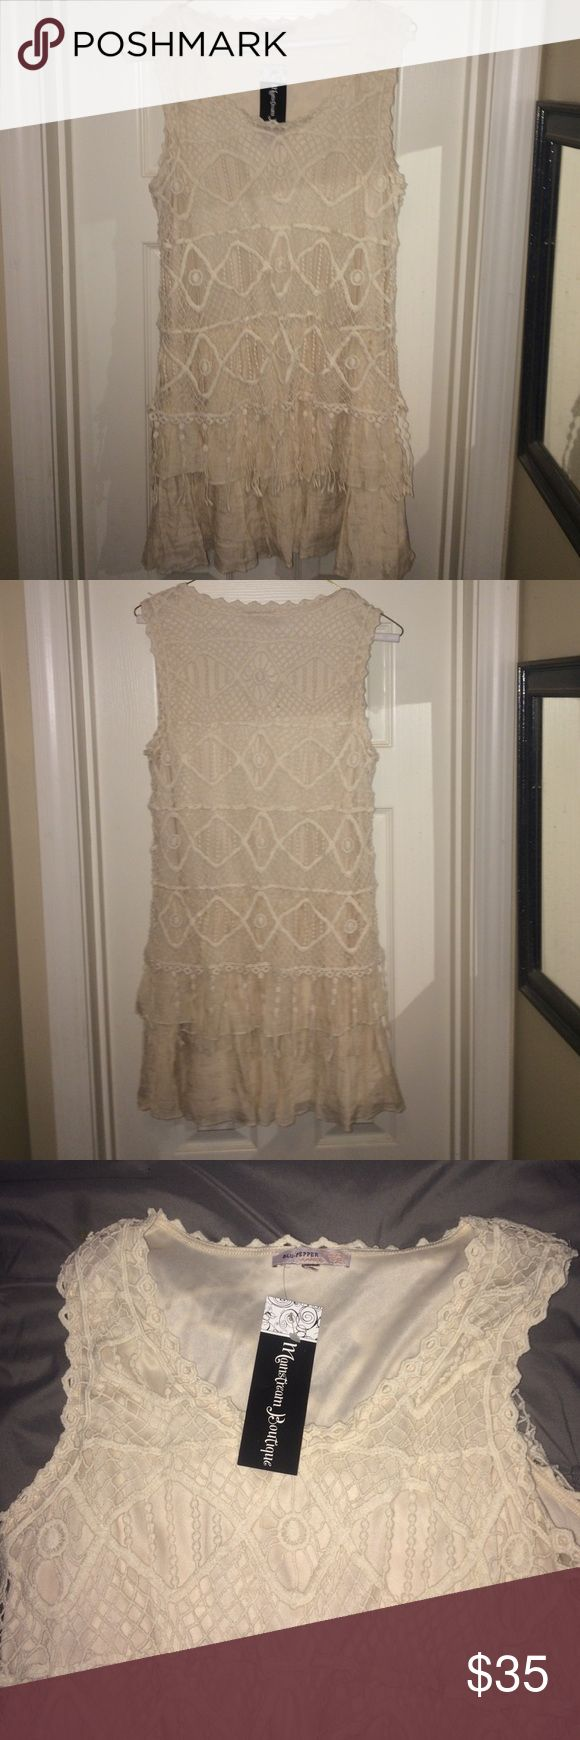 Cute Boho Dress Never worn, super cute, cream boho dress. Fun to wear to a festival or concert! Can be worn alone as a dress or with a cute jean jacket, or cardigan! Blu Pepper Dresses